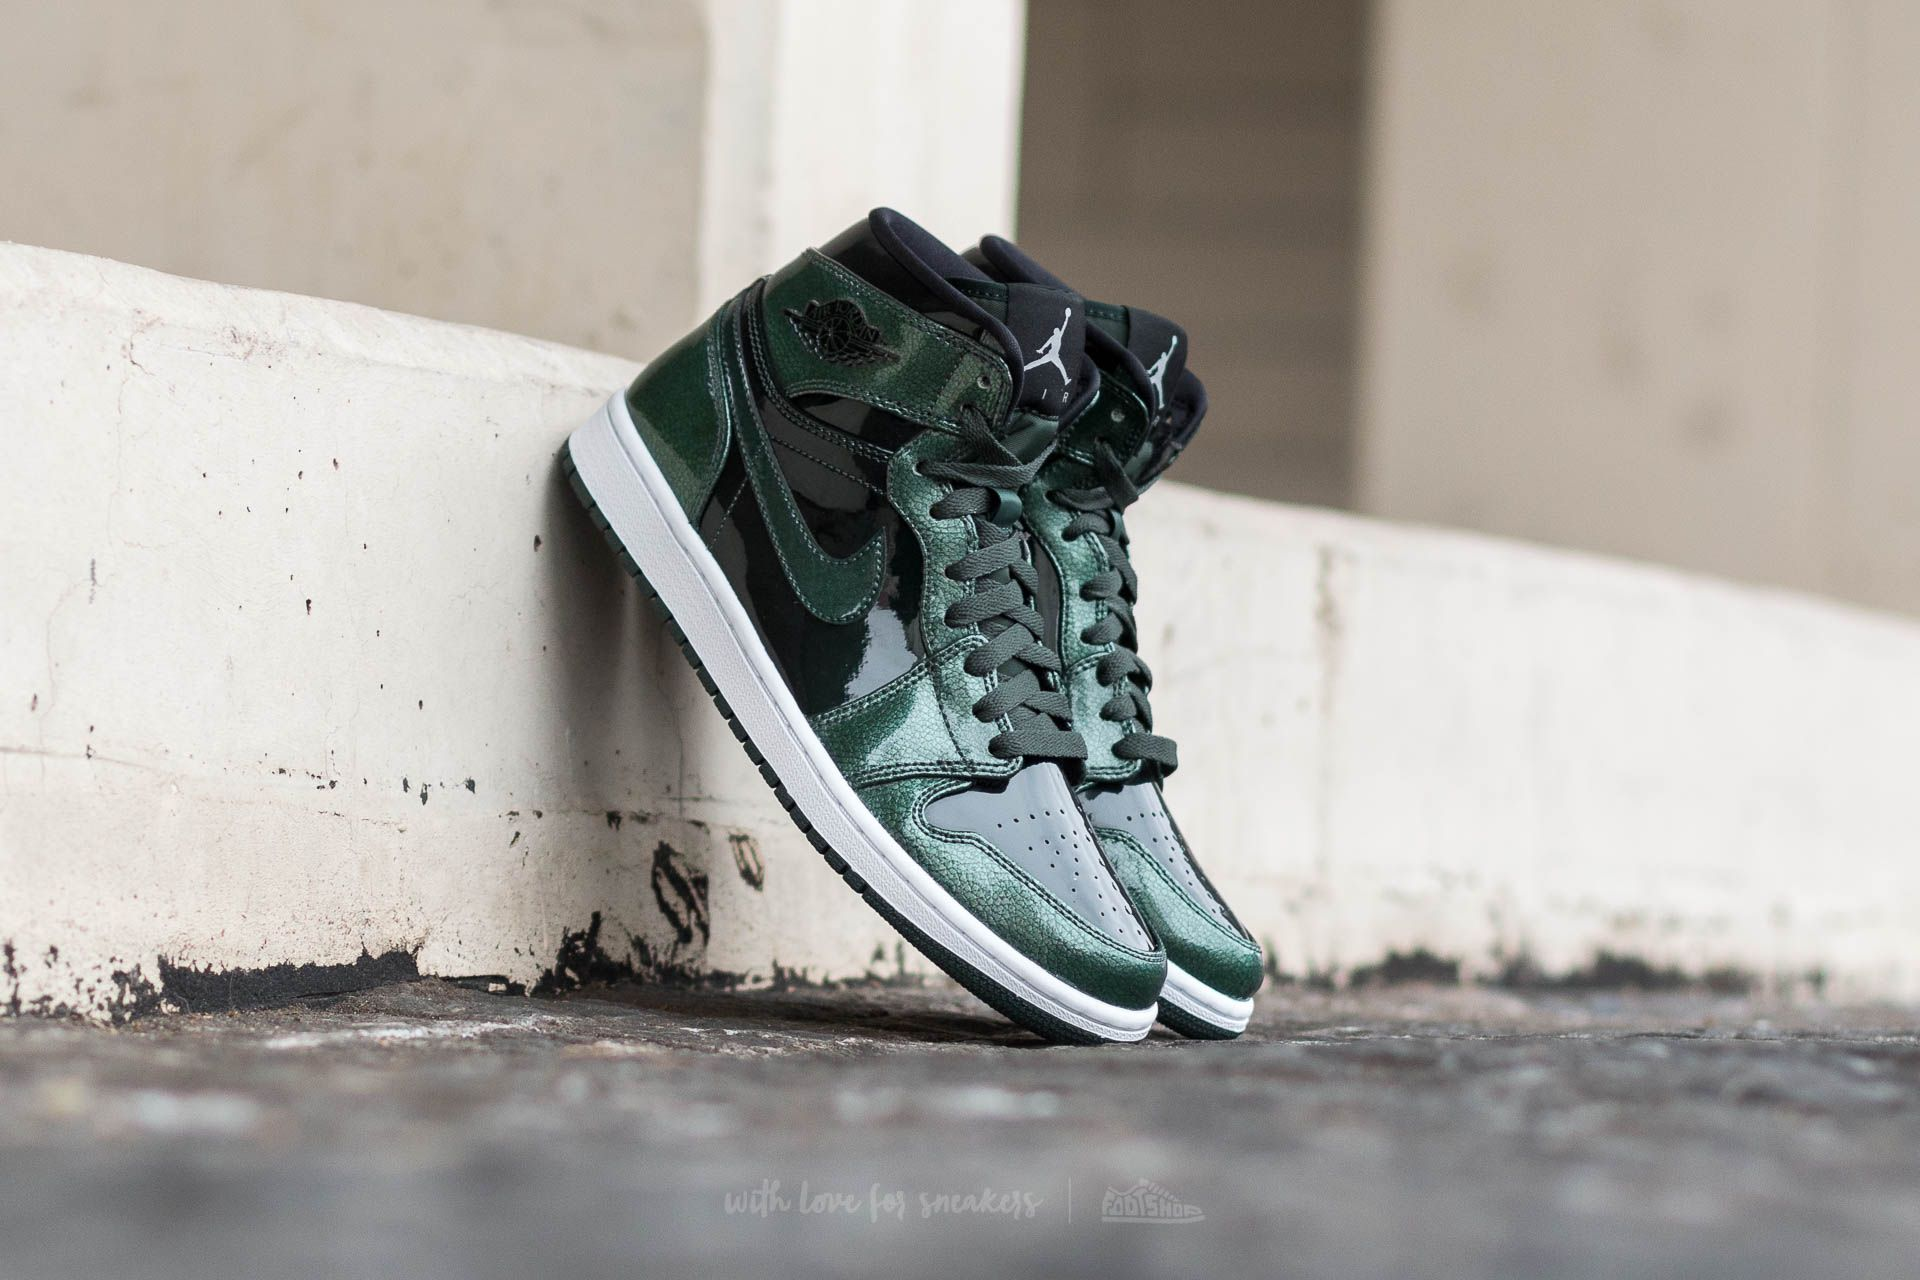 Air Jordan 1 Retro High Grove Green/ Black-White